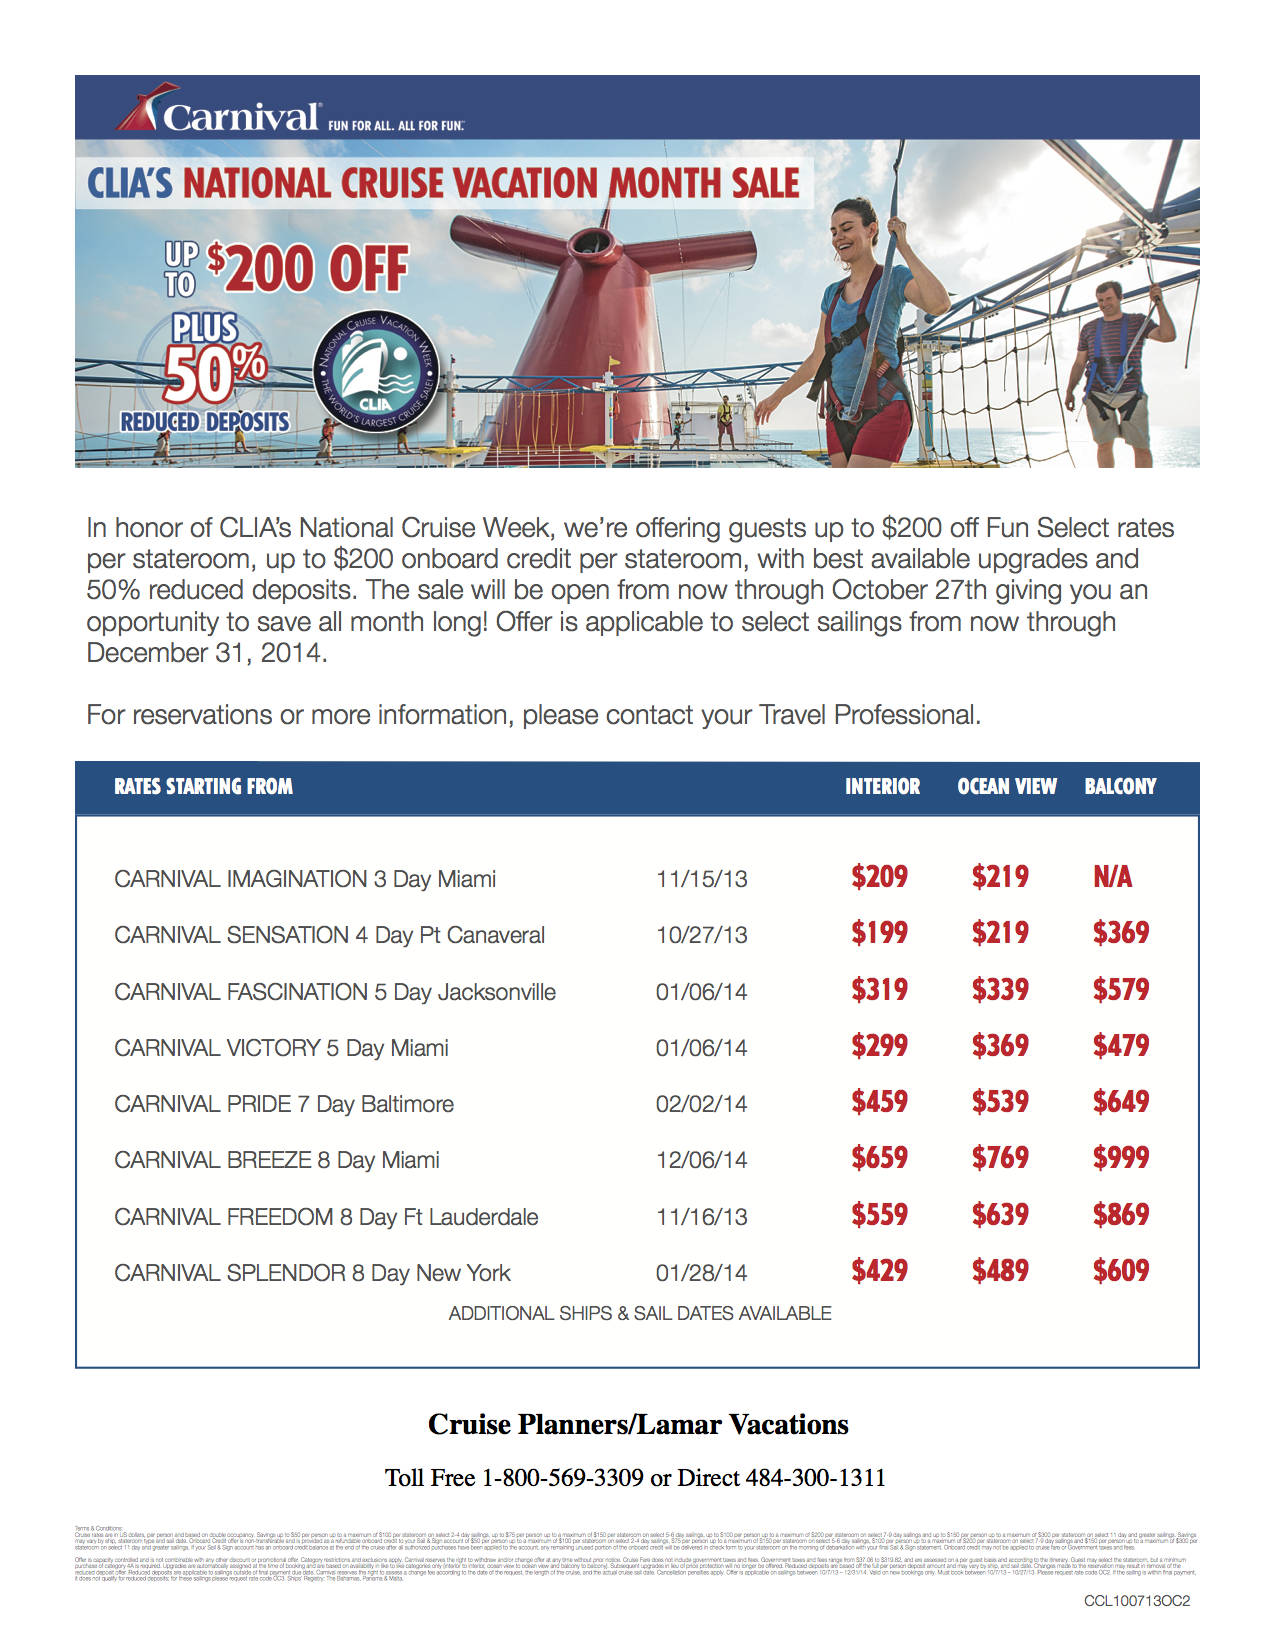 Cruise Vacation, Carnival Cruise Line